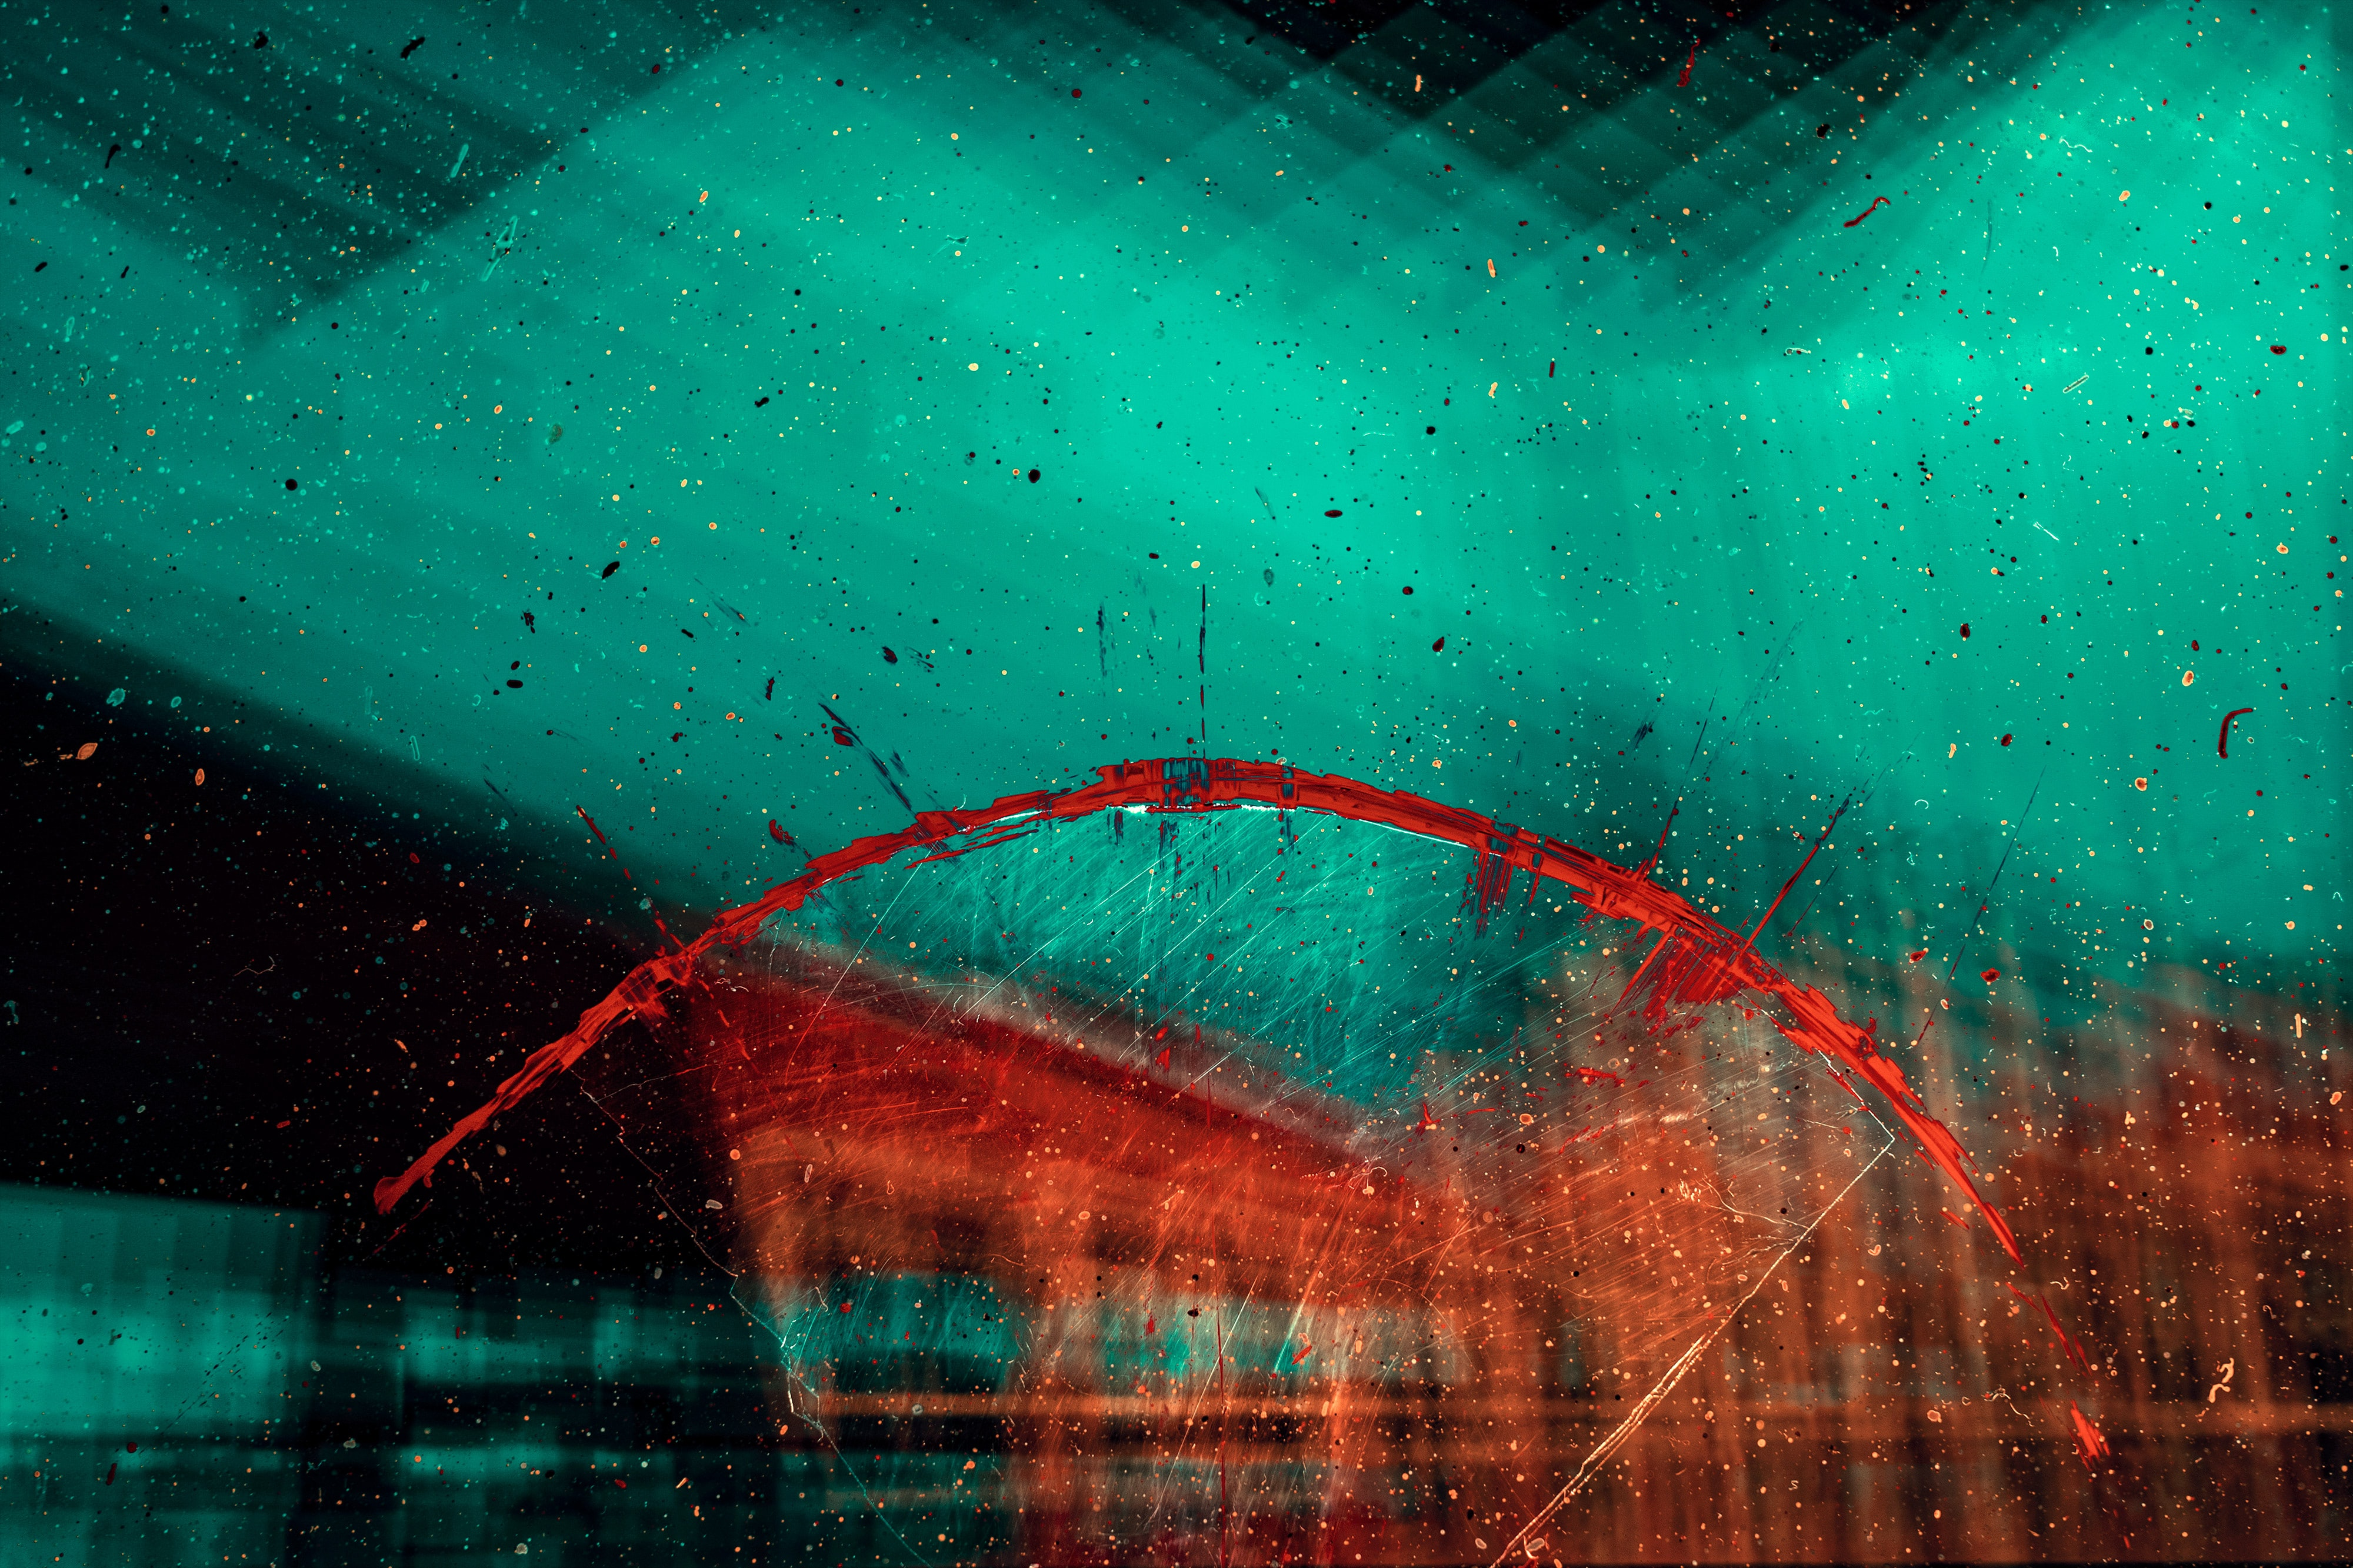 158103 download wallpaper Abstract, Paint, Spray, Glass, Blur, Smooth, Drops screensavers and pictures for free